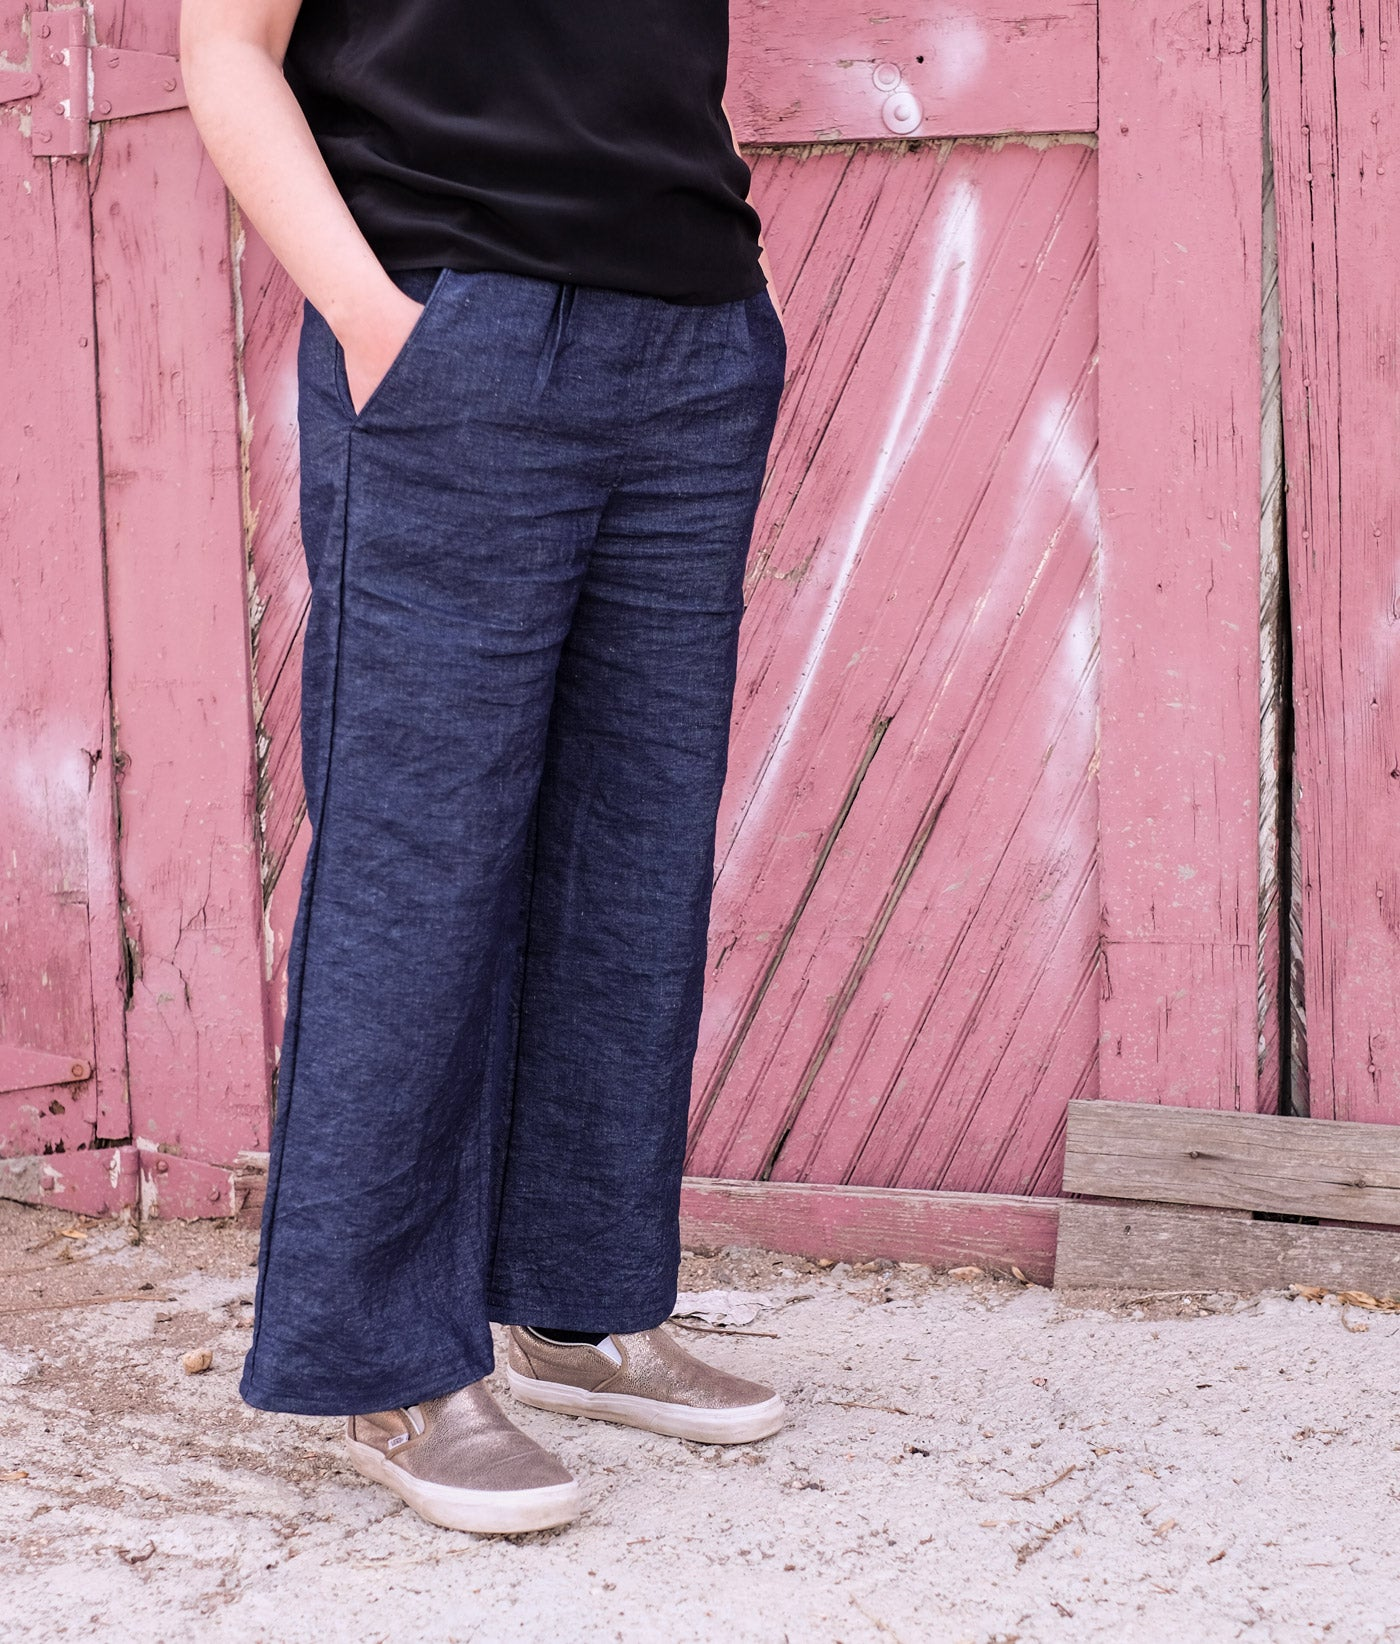 close up of Lucy's indigo linen trousers, her hands in the pockets